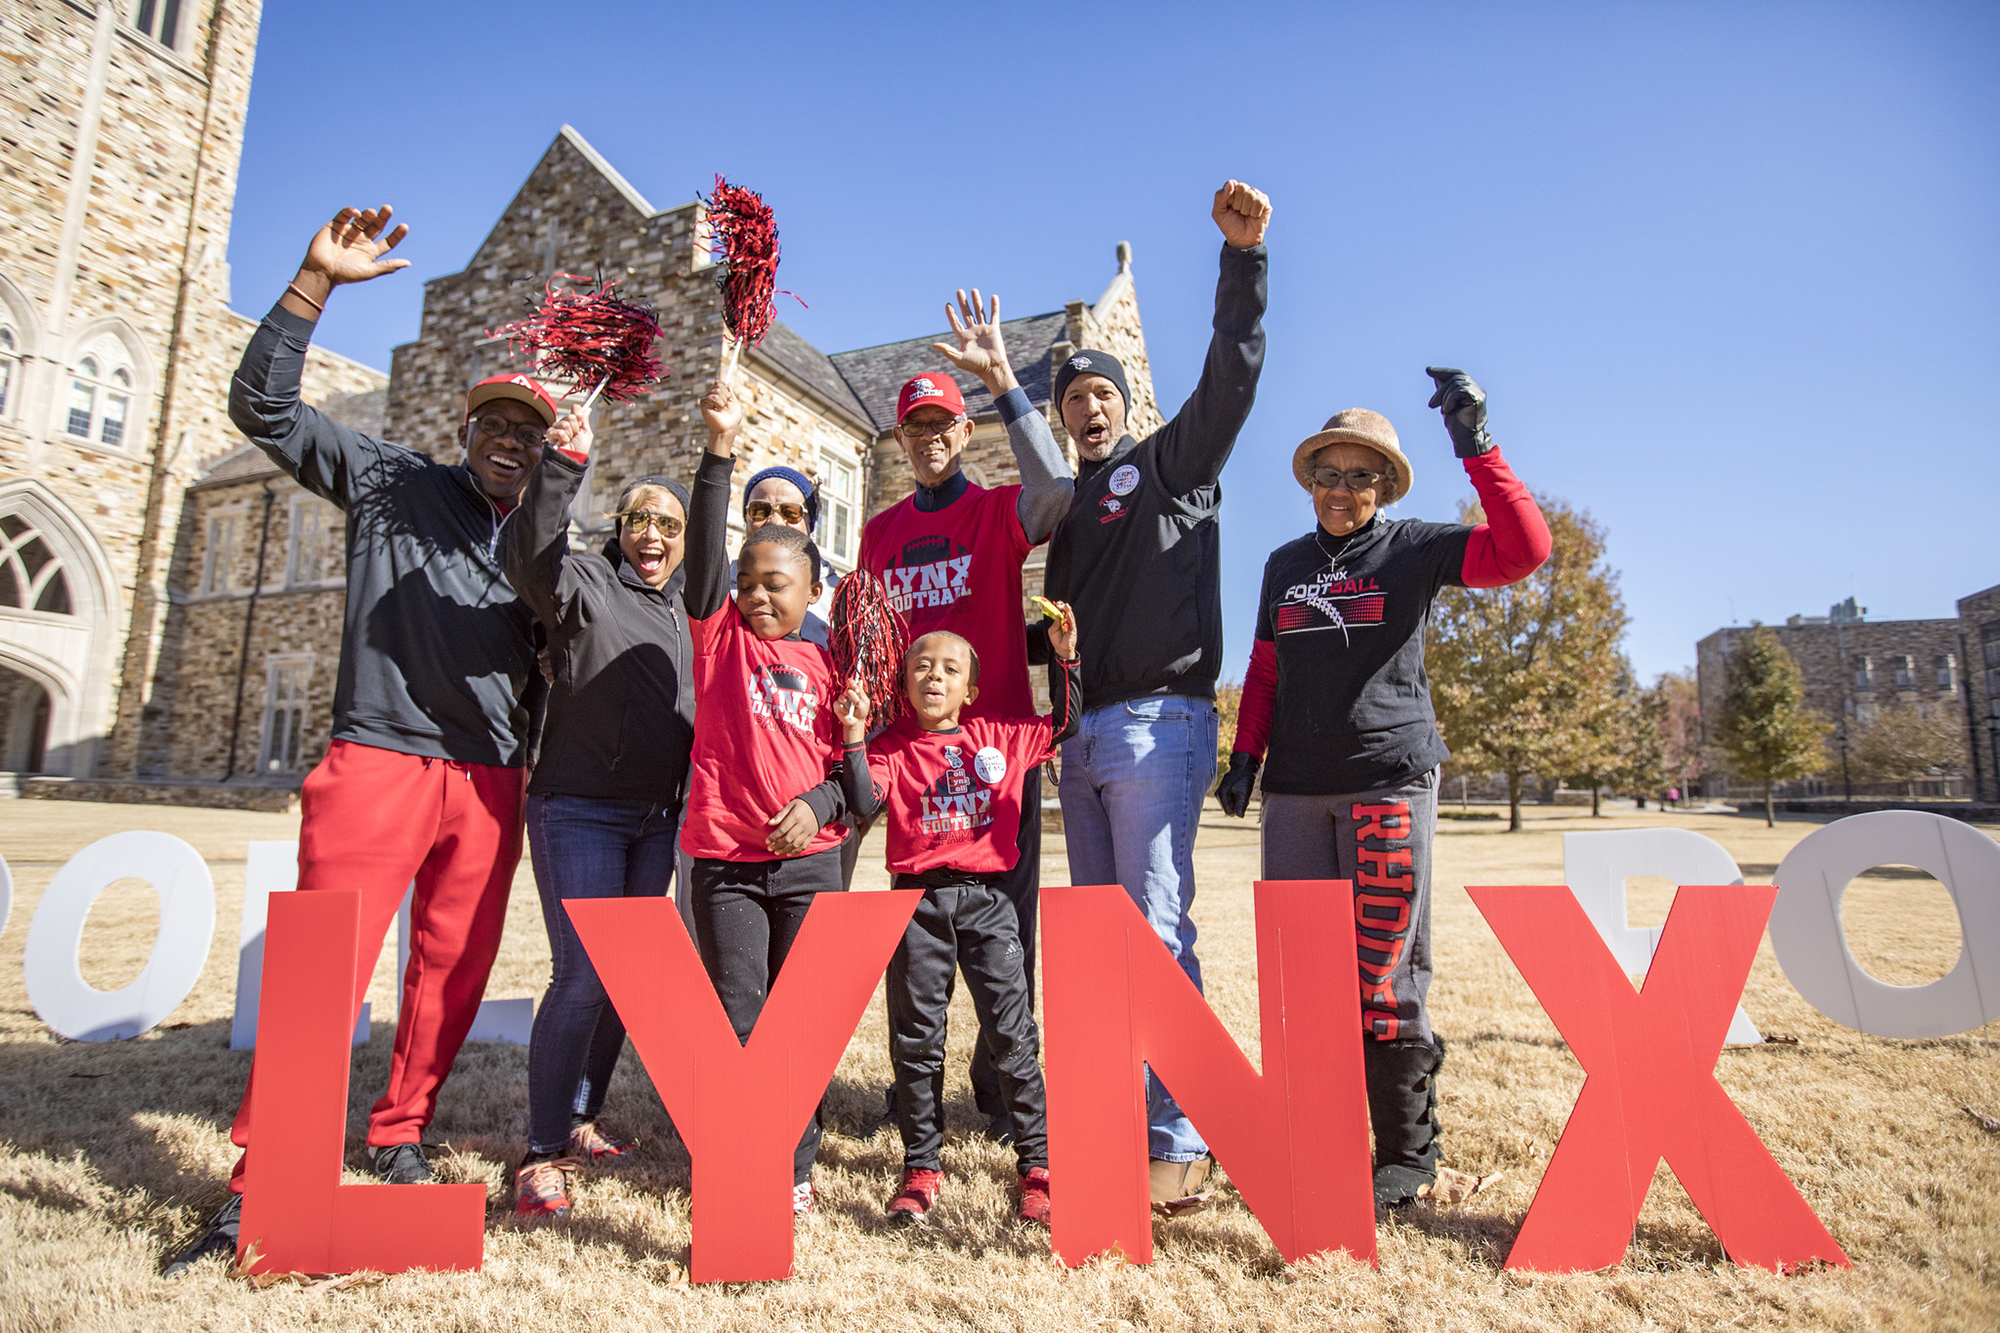 Family Celebrating the Lynx!